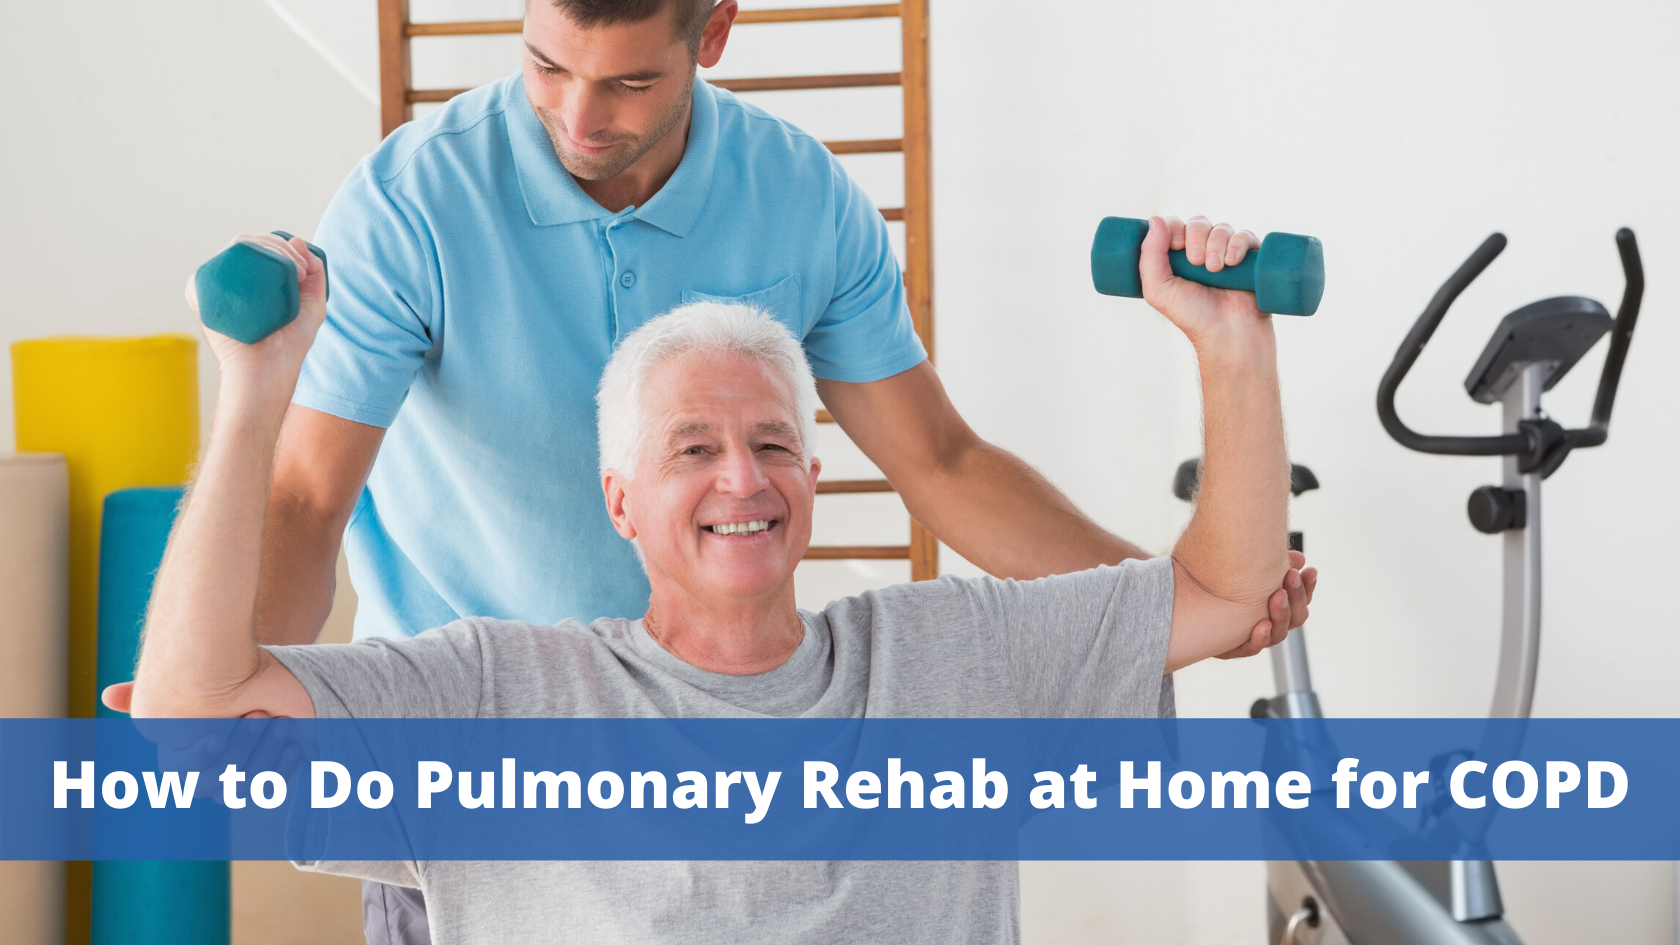 How to Do Pulmonary Rehab at Home for COPD